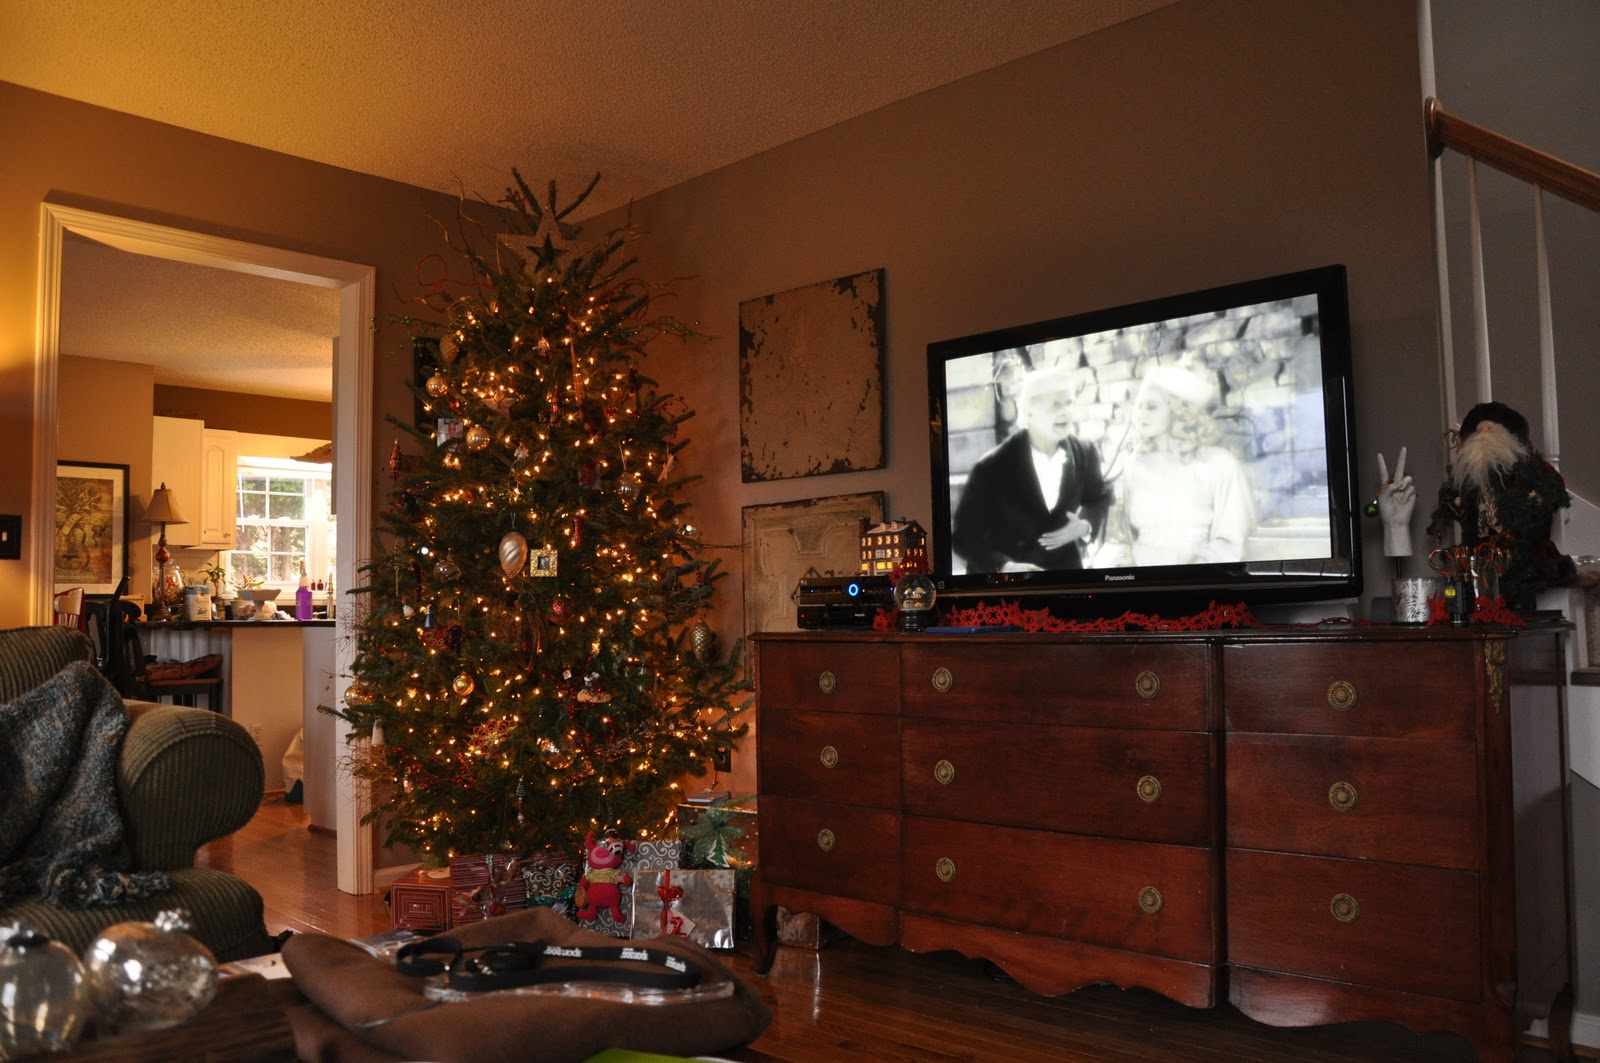 Top 10 Christmas Films: Home Alone, Trading Places, The